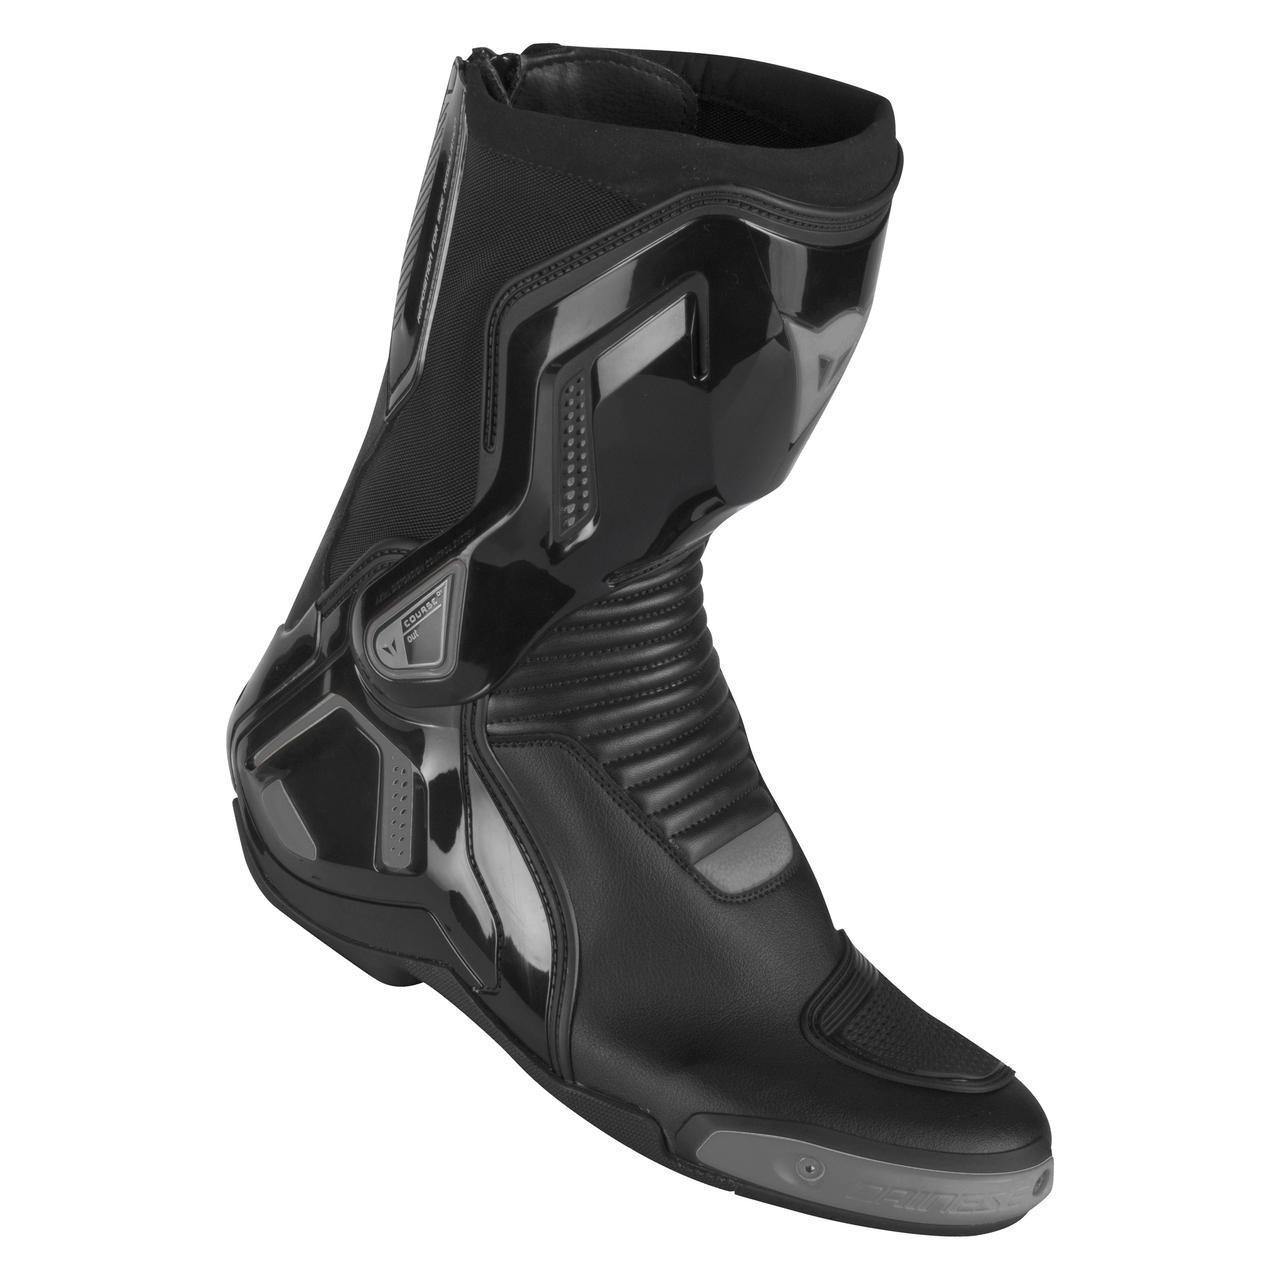 МОТОБОТЫ DAINESE COURSE D1 OUT AIR, 44 *